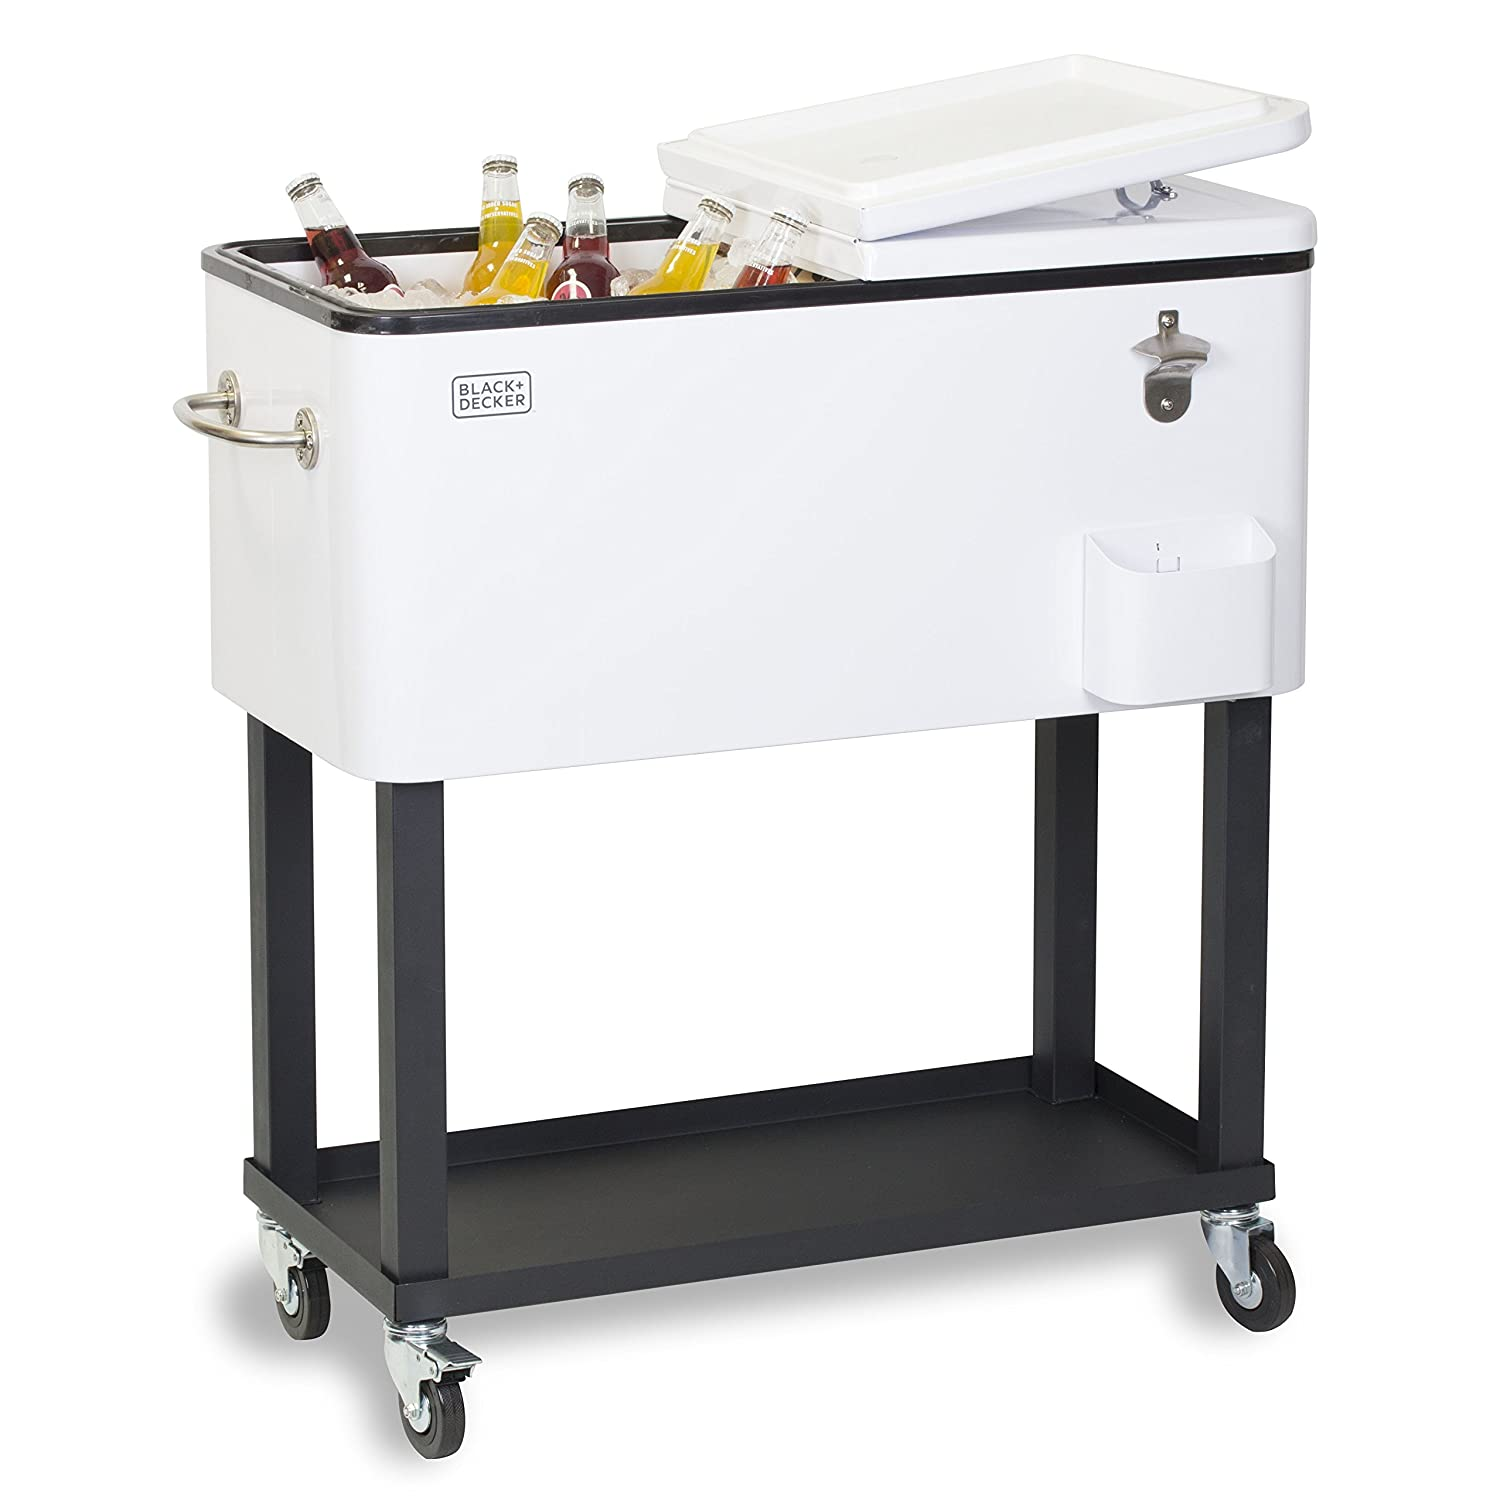 BLACK+DECKER, Mobile Cooler Cart, 2 Door Seal Lid, Bottle Opener with Catch Basin, Bottom Storage Tray, 4 Rolling Wheels, White, BCC20W